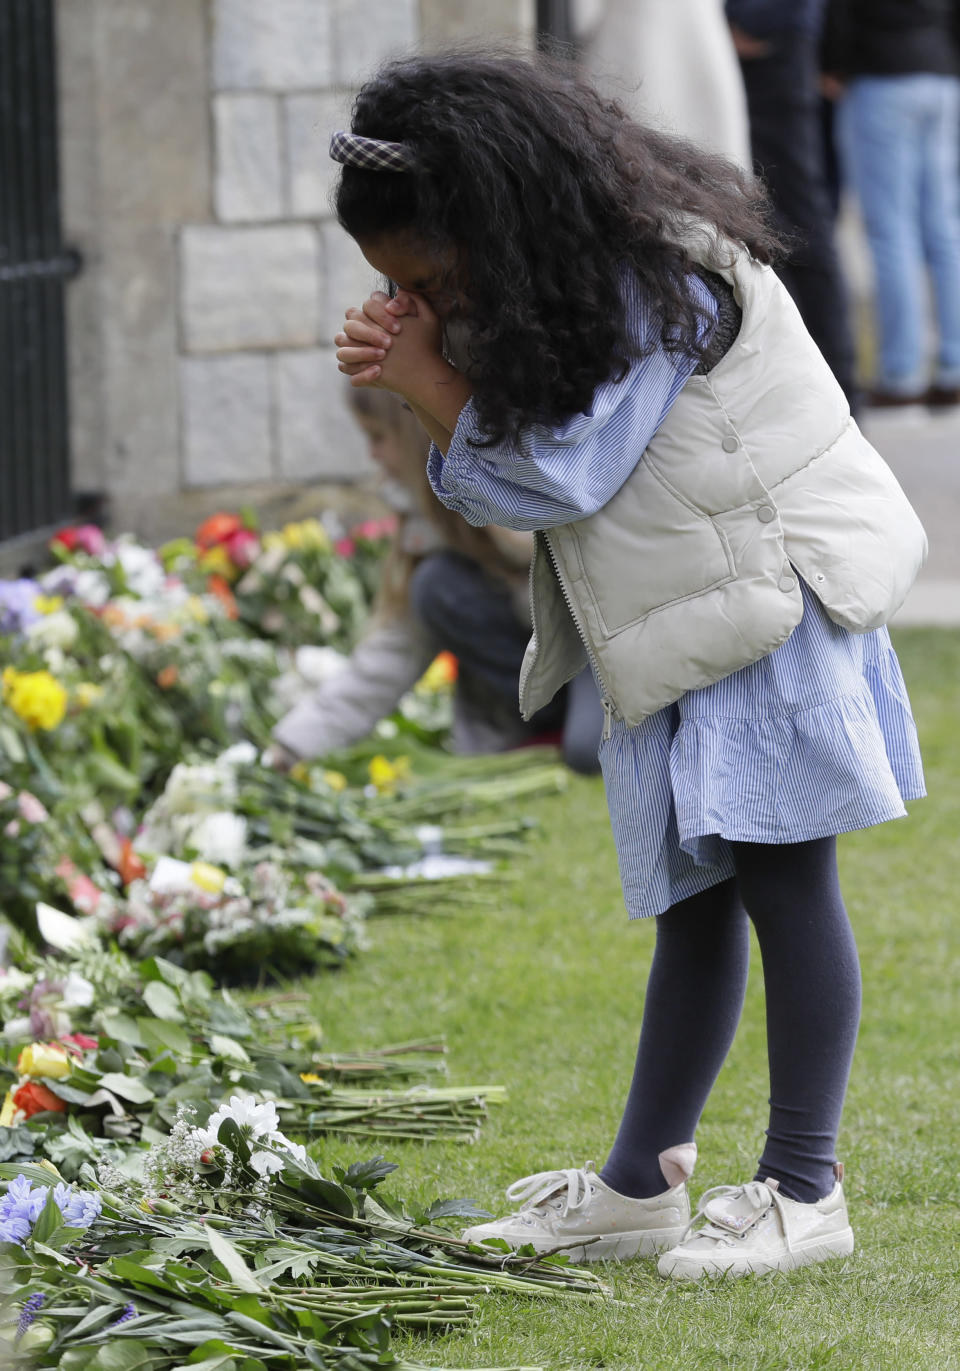 A child prays by the flowers left outside Windsor Castle in Windsor, England Sunday, April 11, 2021. Britain's Prince Philip, the irascible and tough-minded husband of Queen Elizabeth II who spent more than seven decades supporting his wife in a role that mostly defined his life, died on Friday. (AP Photo/Kirsty Wigglesworth)